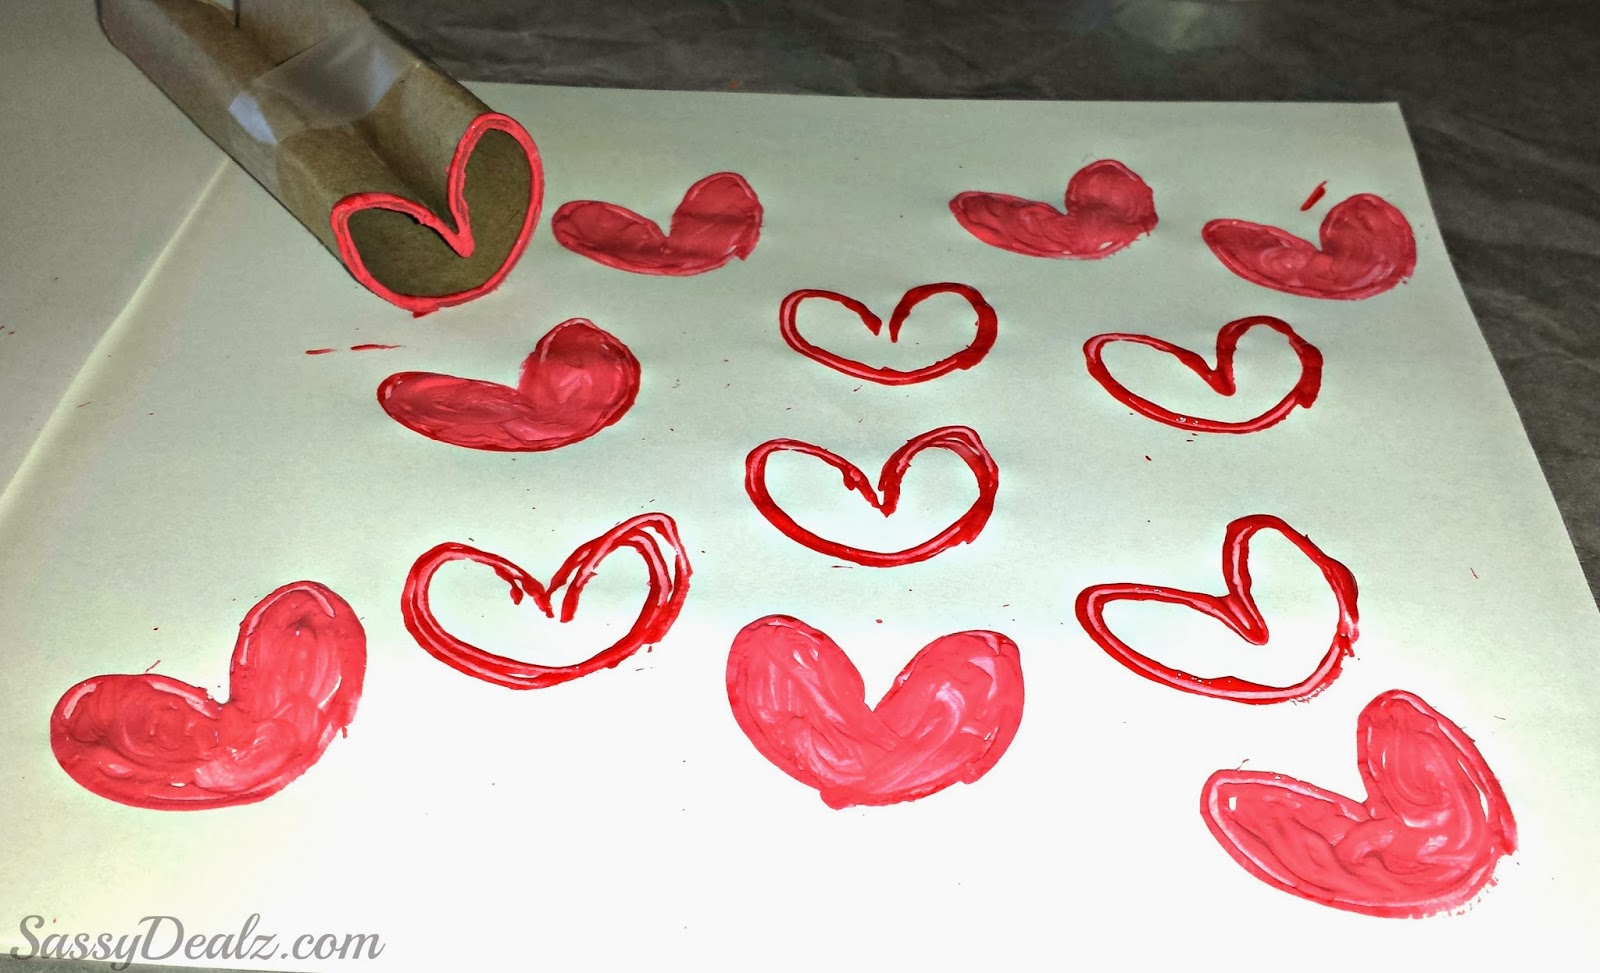 Diy heart stamp using toilet paper rolls kids valentines for Crafts that use toilet paper rolls